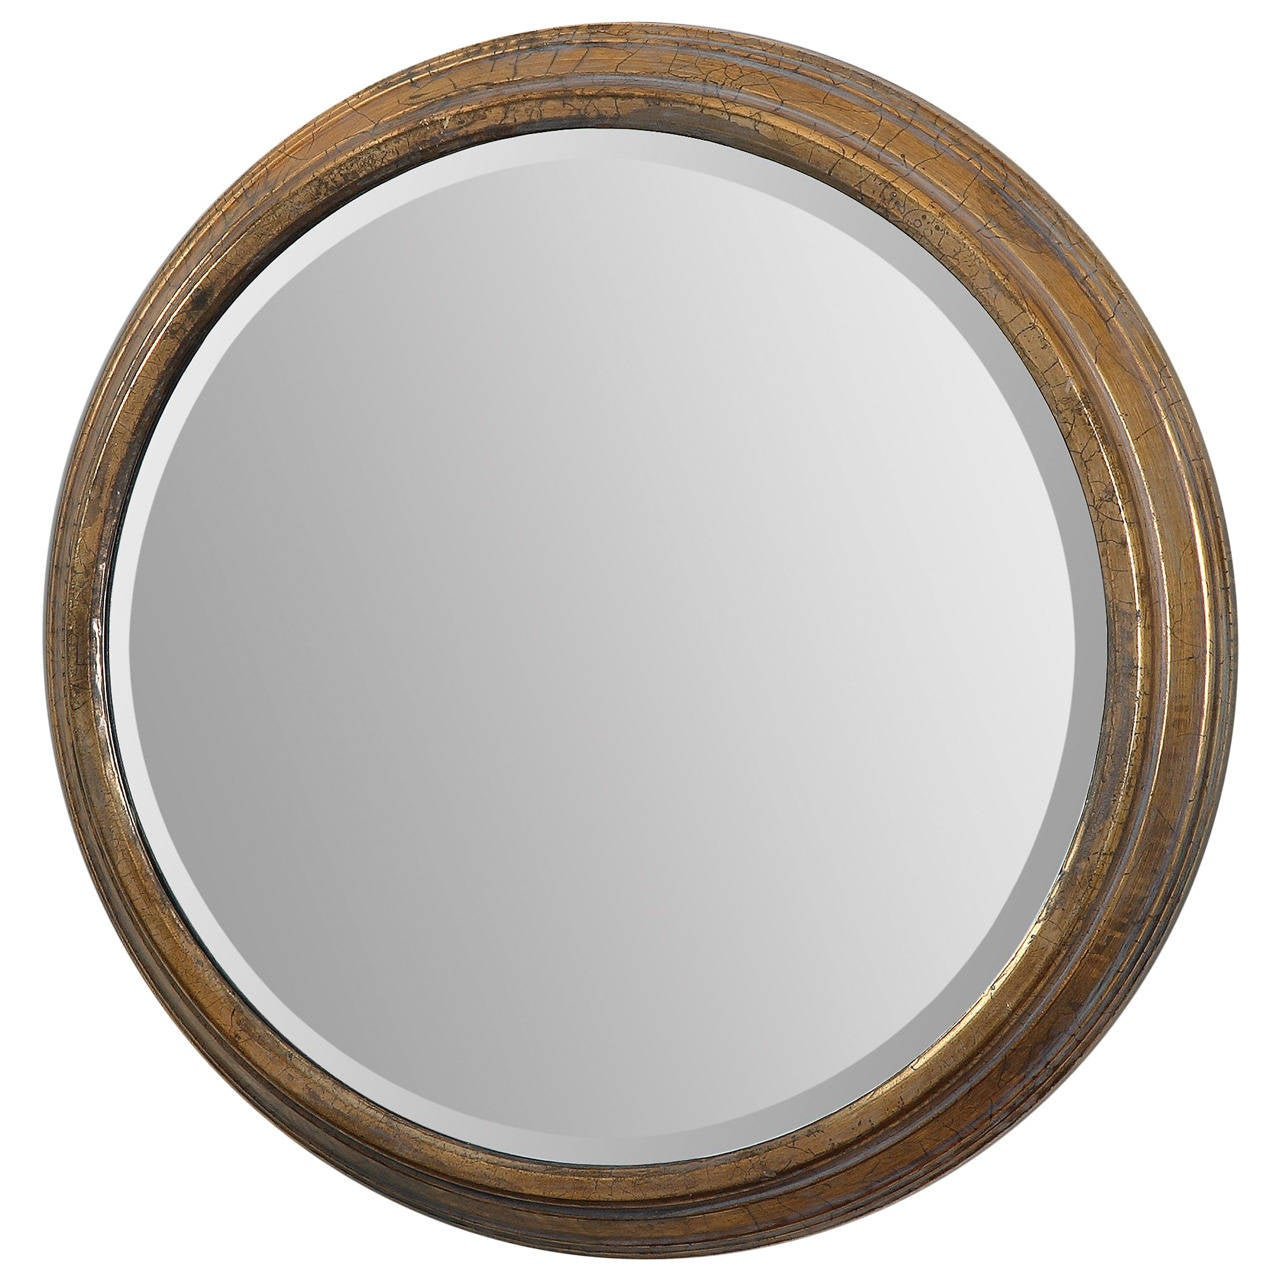 Fabulous belgian gilt metal round mirror at 1stdibs for Round mirror